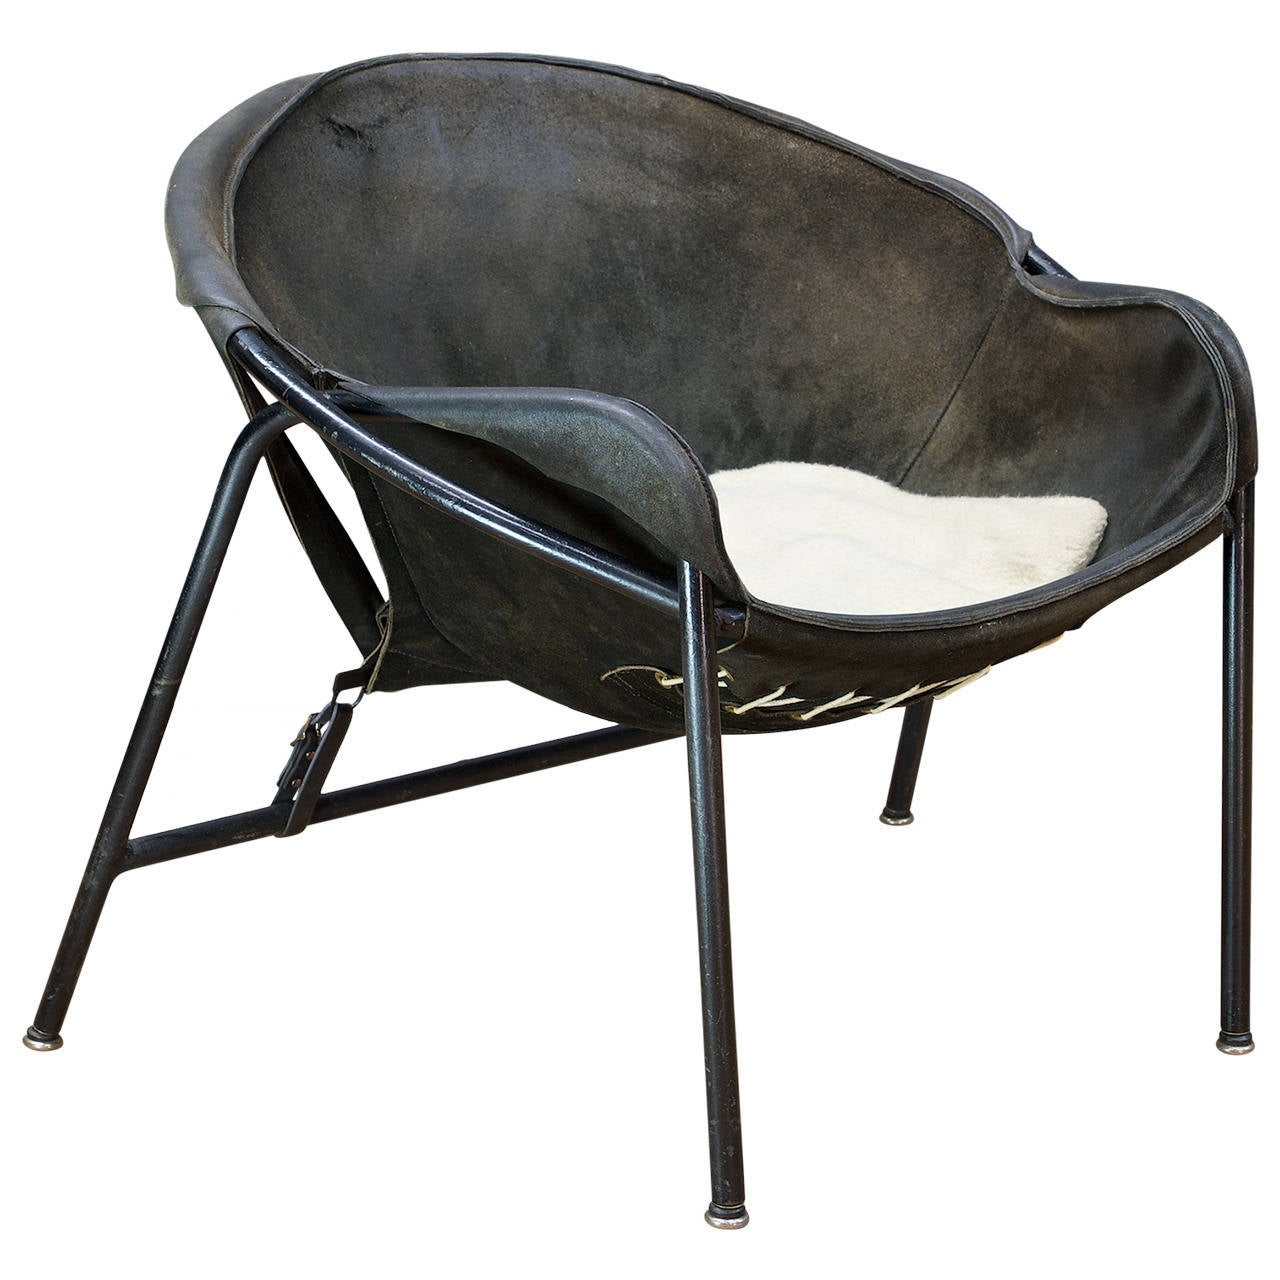 Erik J Rgensen Suede Leather Sling Chair By Bovirke